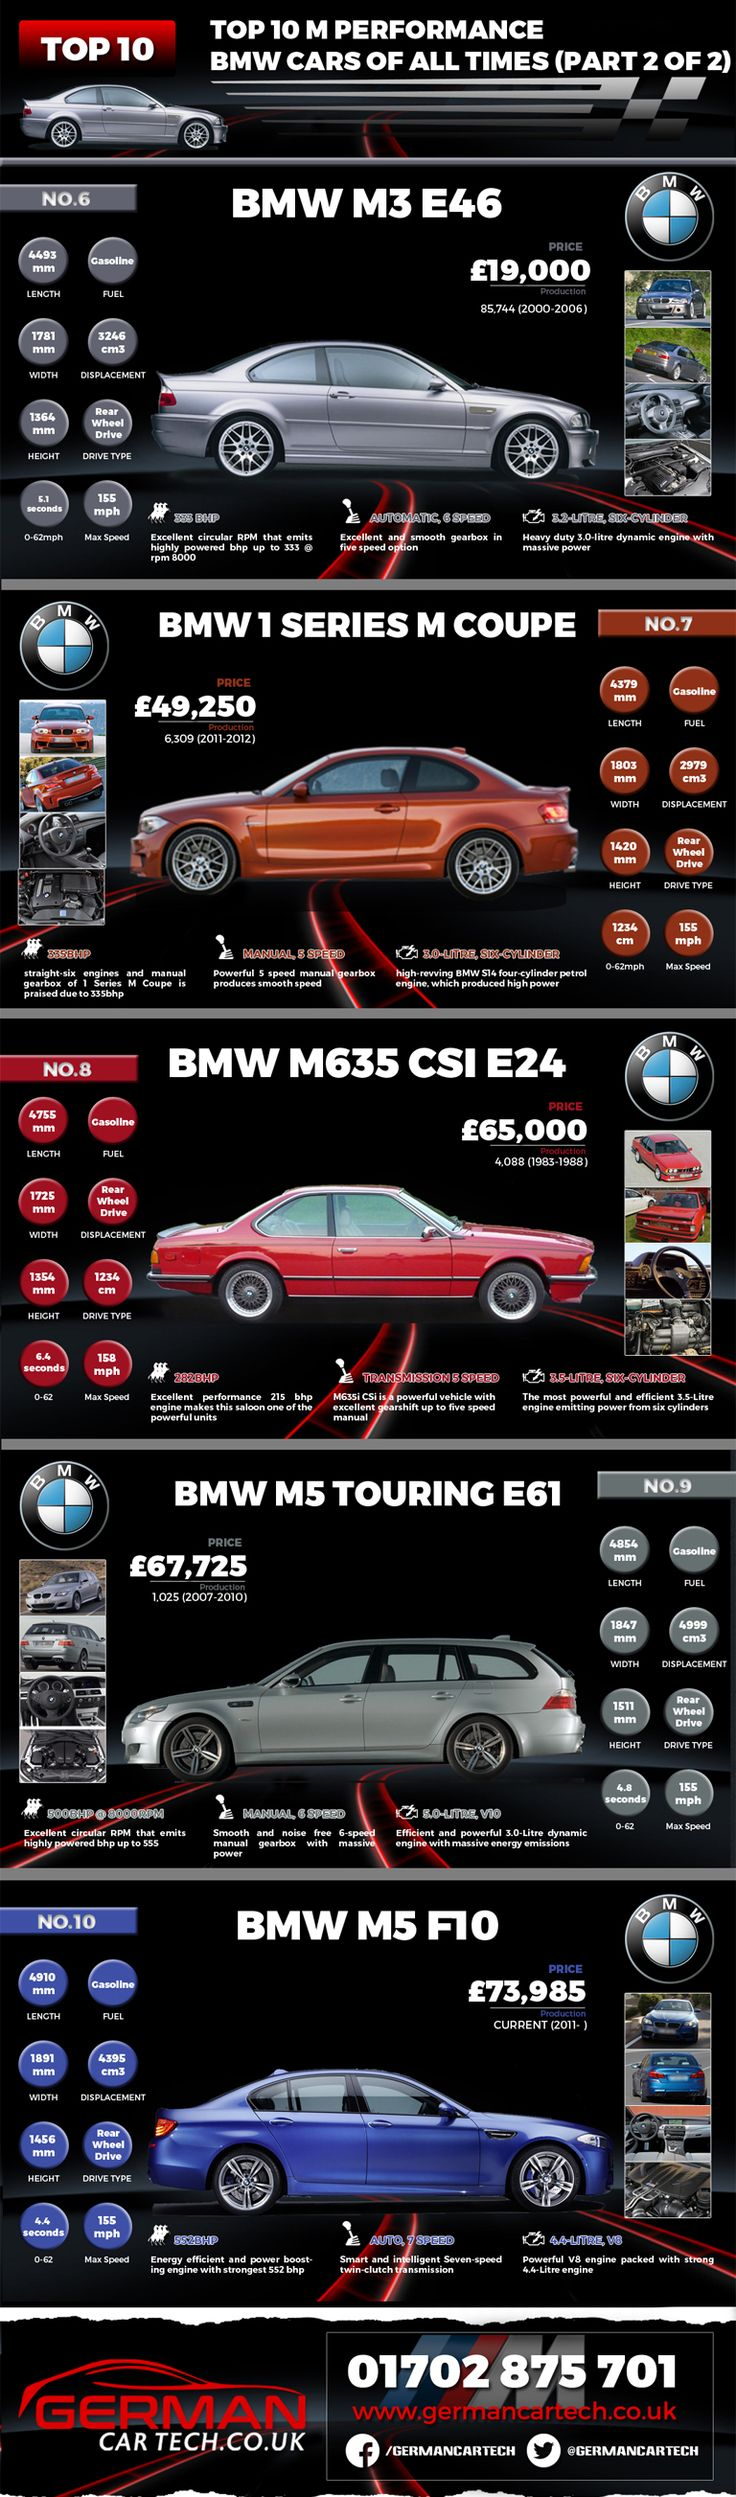 Top 10 m performance bmw cars of all times part 2 of 2 for